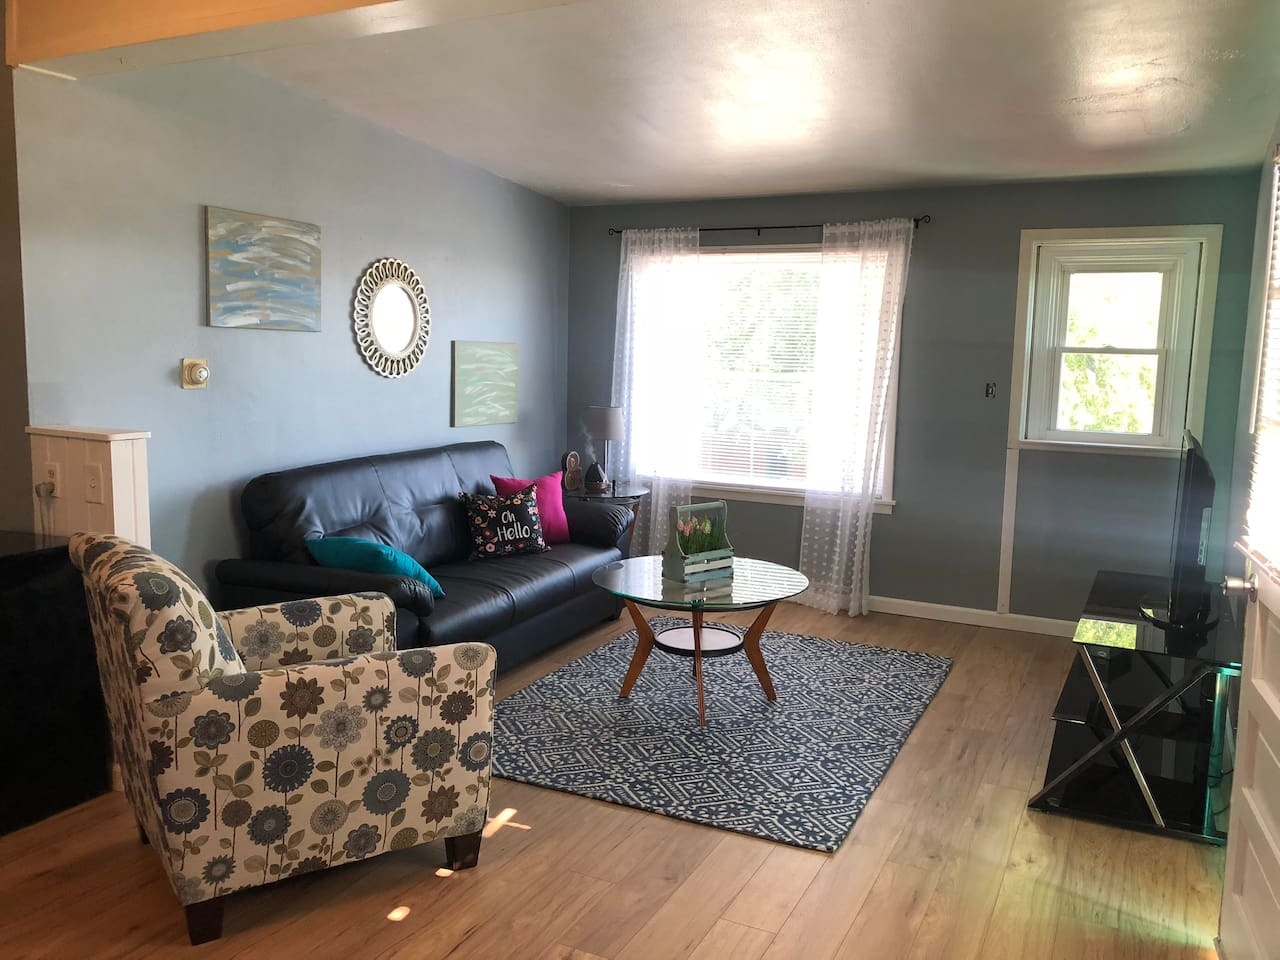 The living area. Perfect for relaxing, kicking back and watching a movie, or playing some board games provided by us!